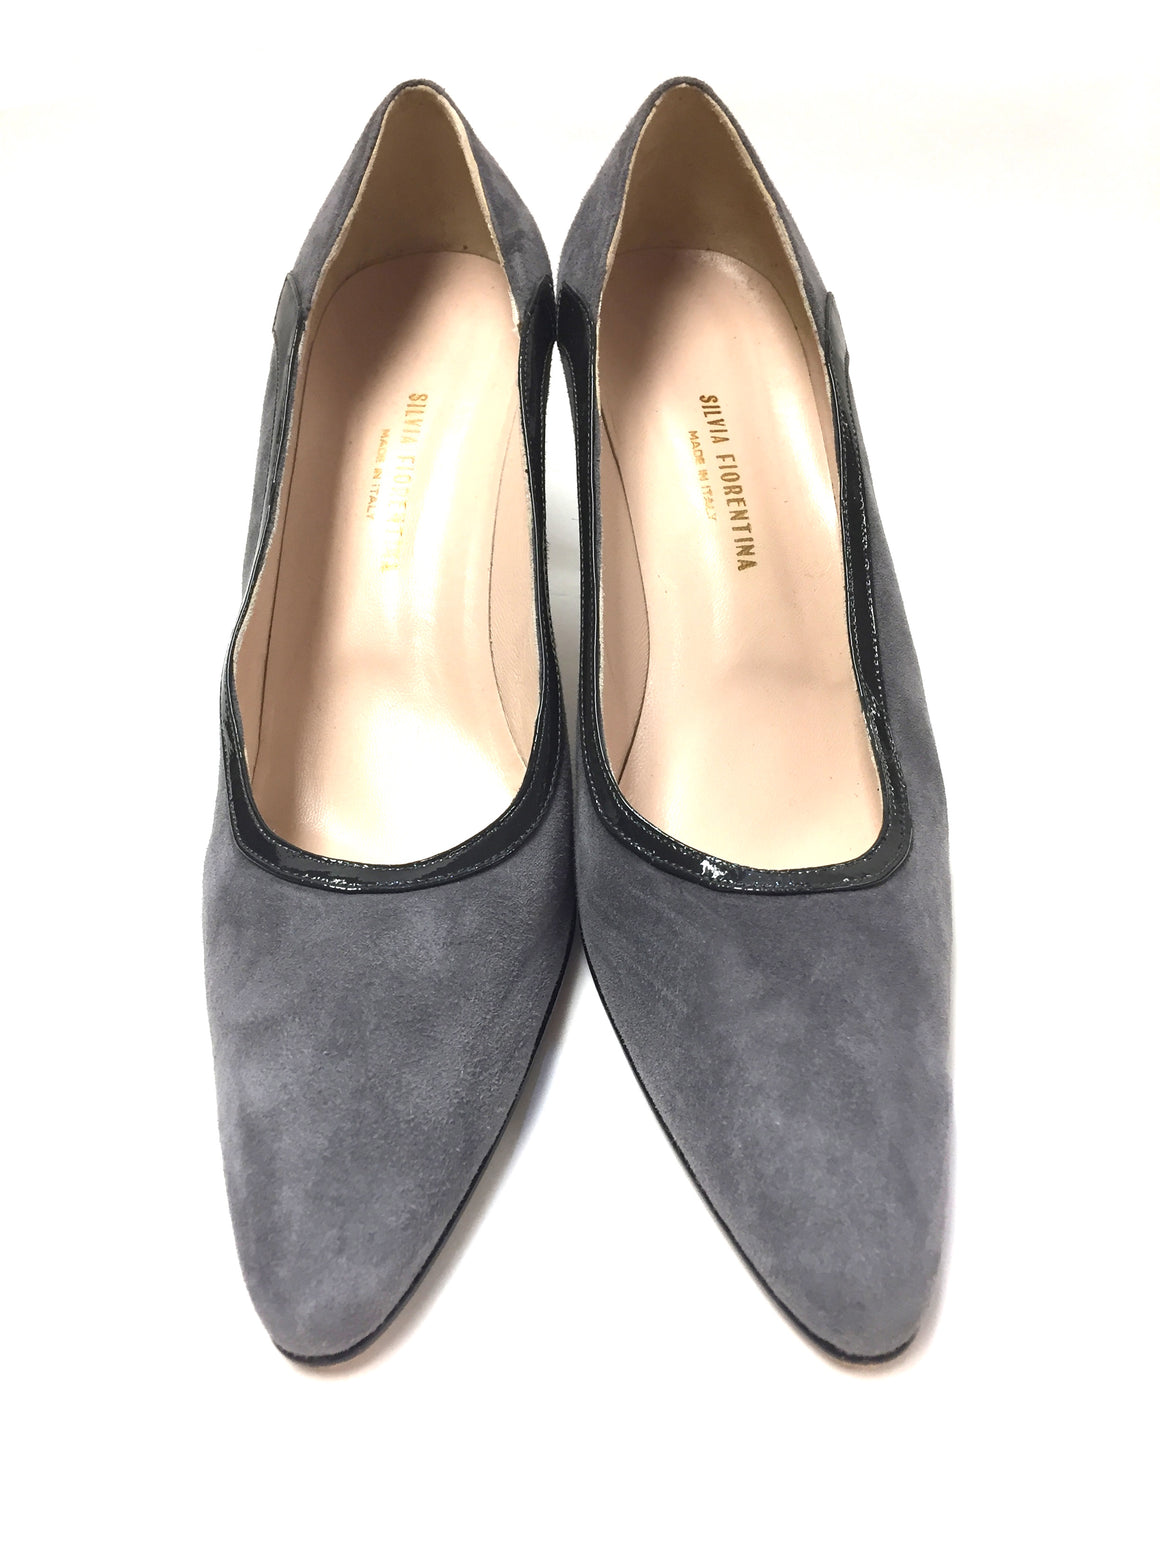 SILVIA FIORENTINA VINTAGE Gray Suede Patent Leather Trim Classic Heel Pumps Shoes Size: 38.5 / 8.5M